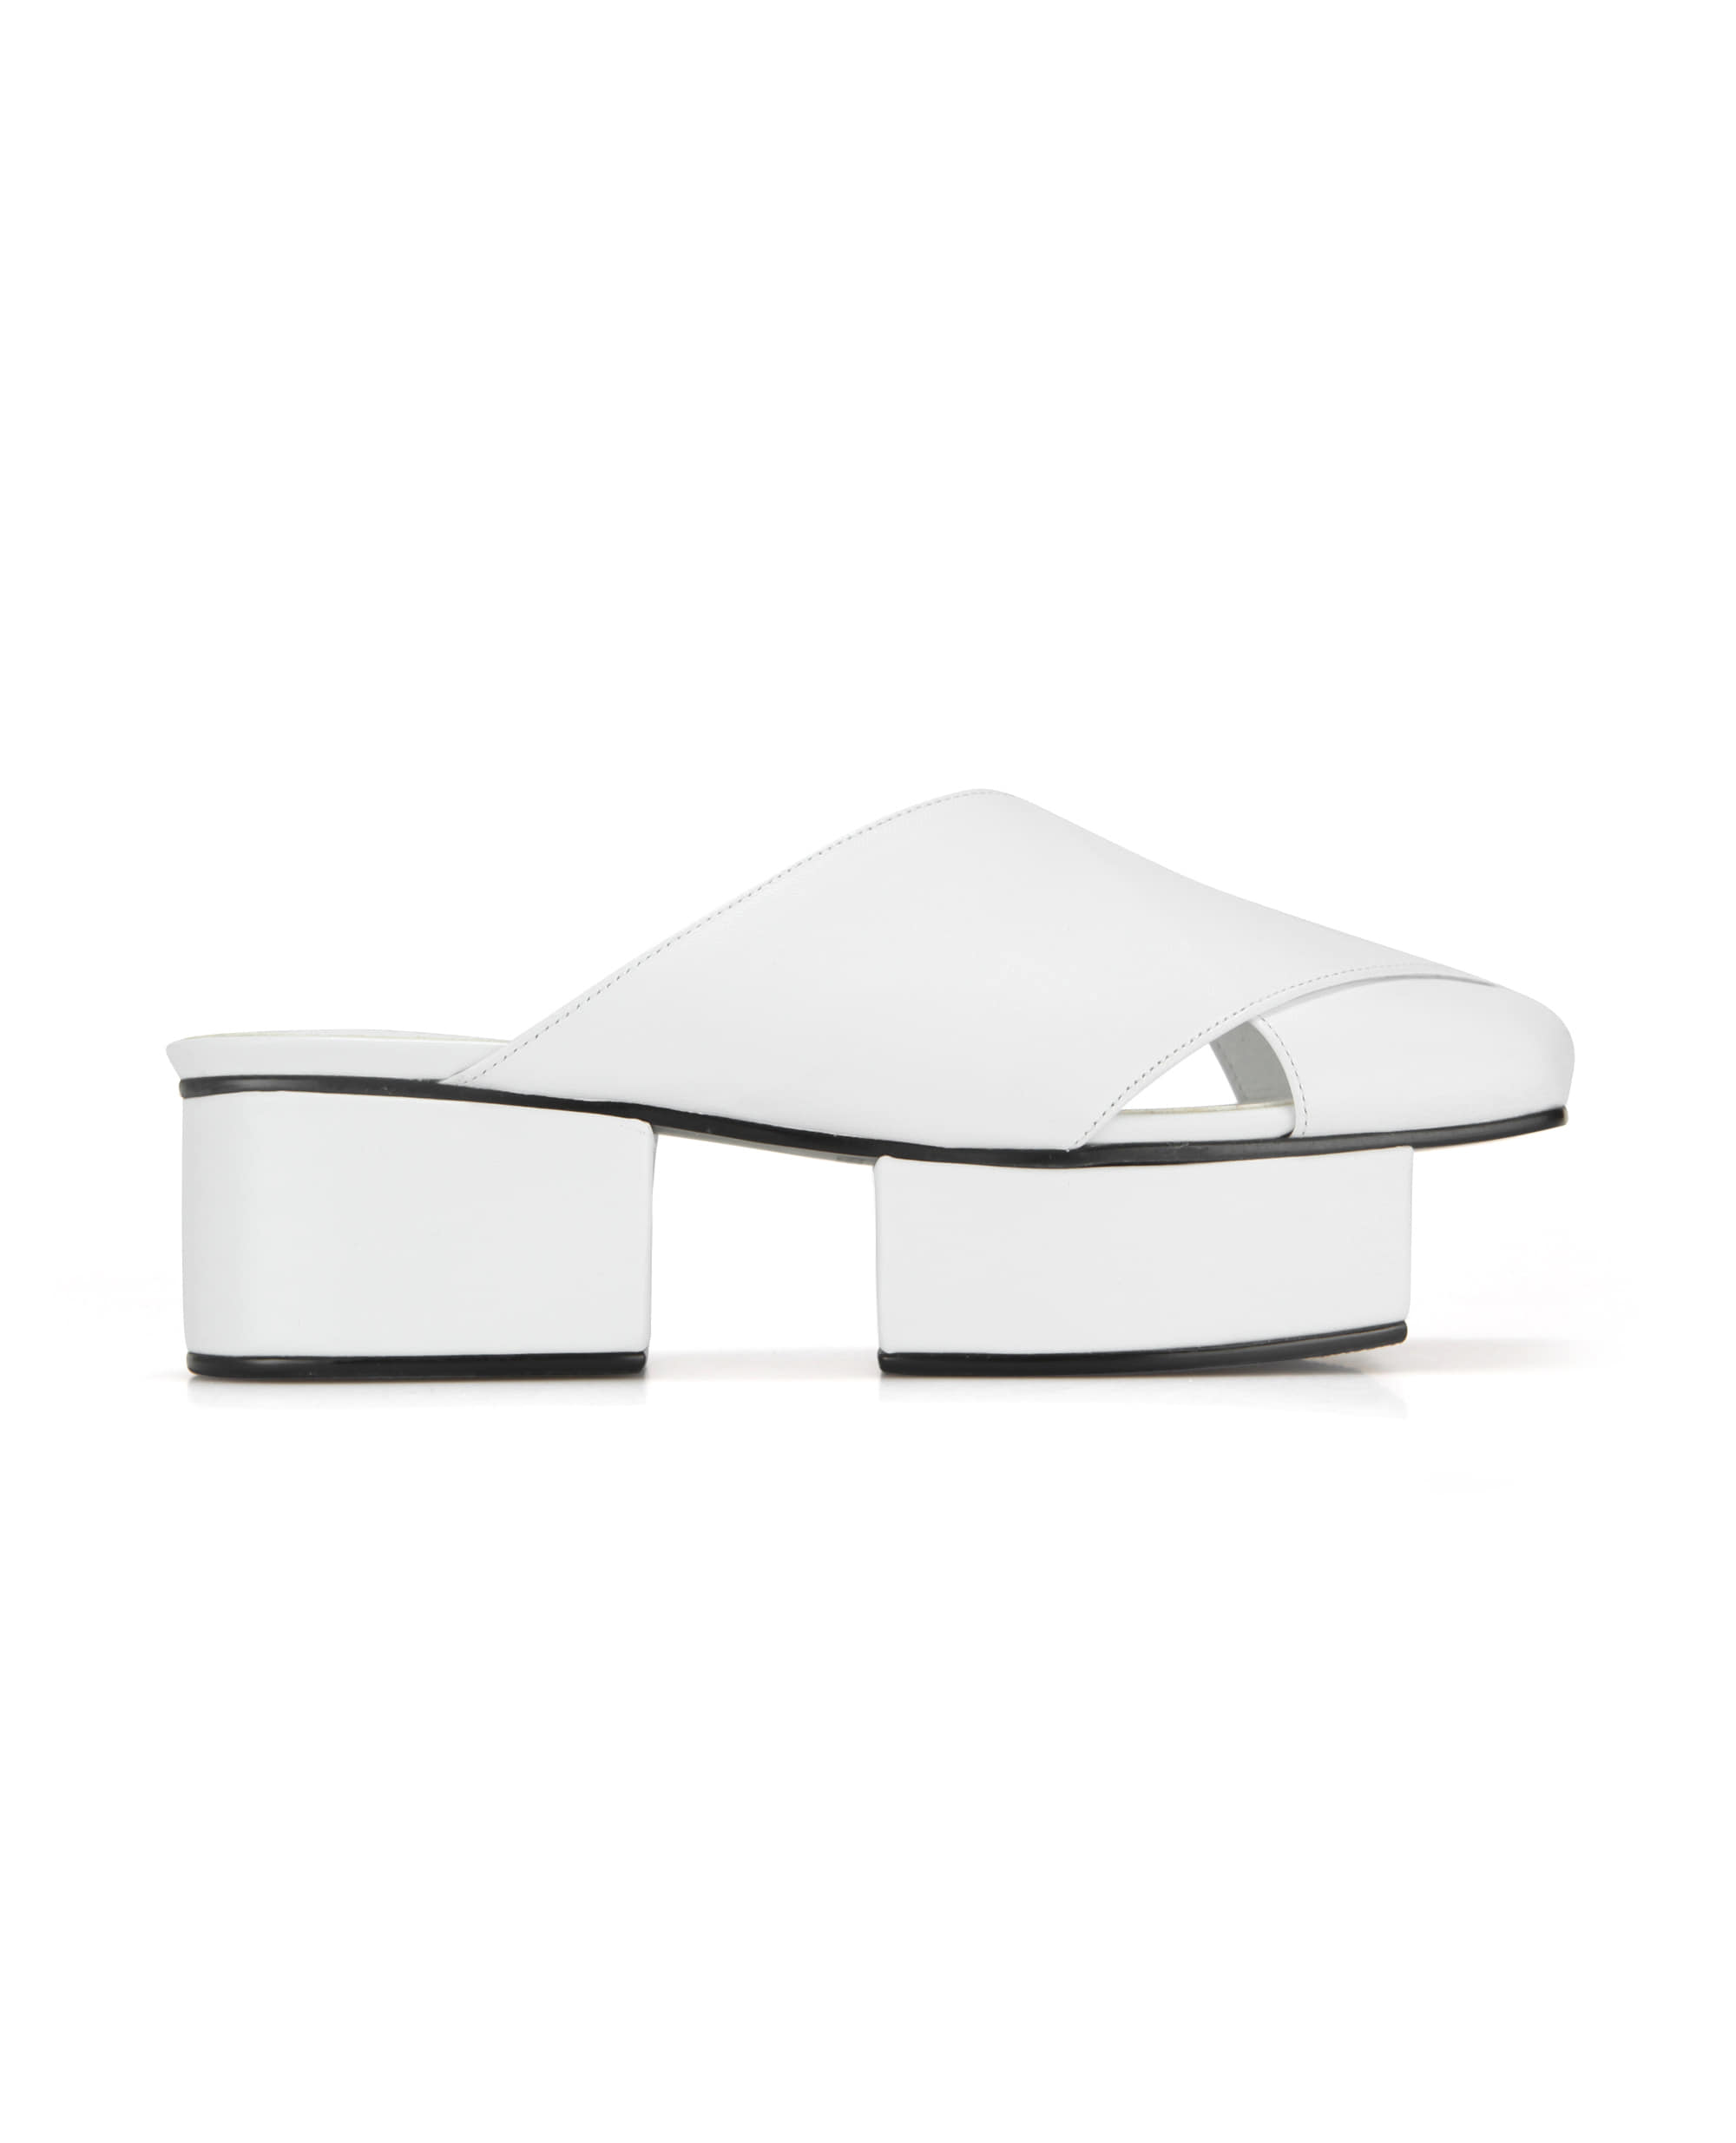 Squared toe crisscross with separated platforms | White